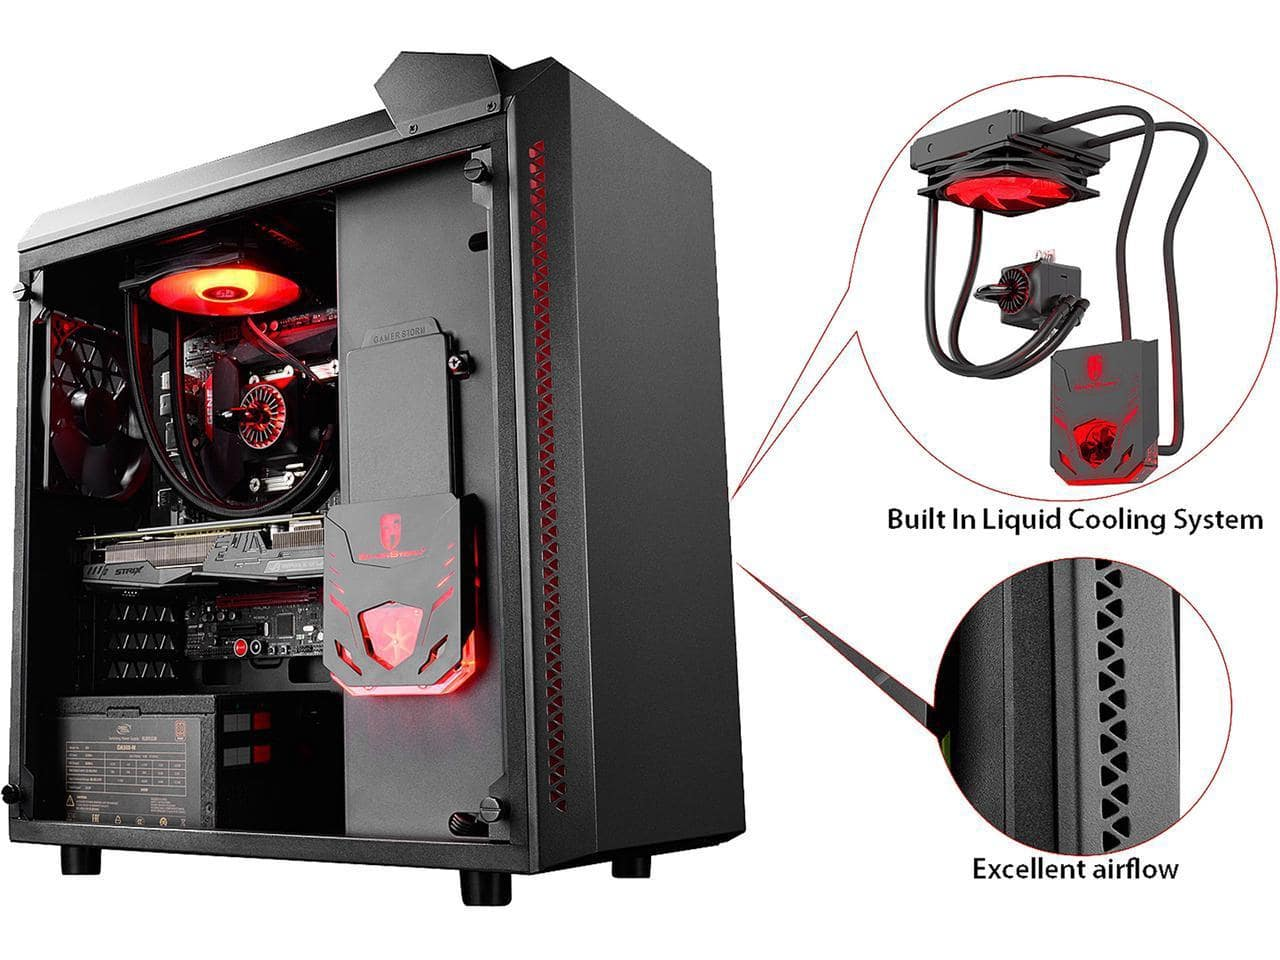 DEEPCOOL Gamer Storm Black ATX Mid with TG 120mm AIO Water Cooling $49.99 AR + $3.99 S/H